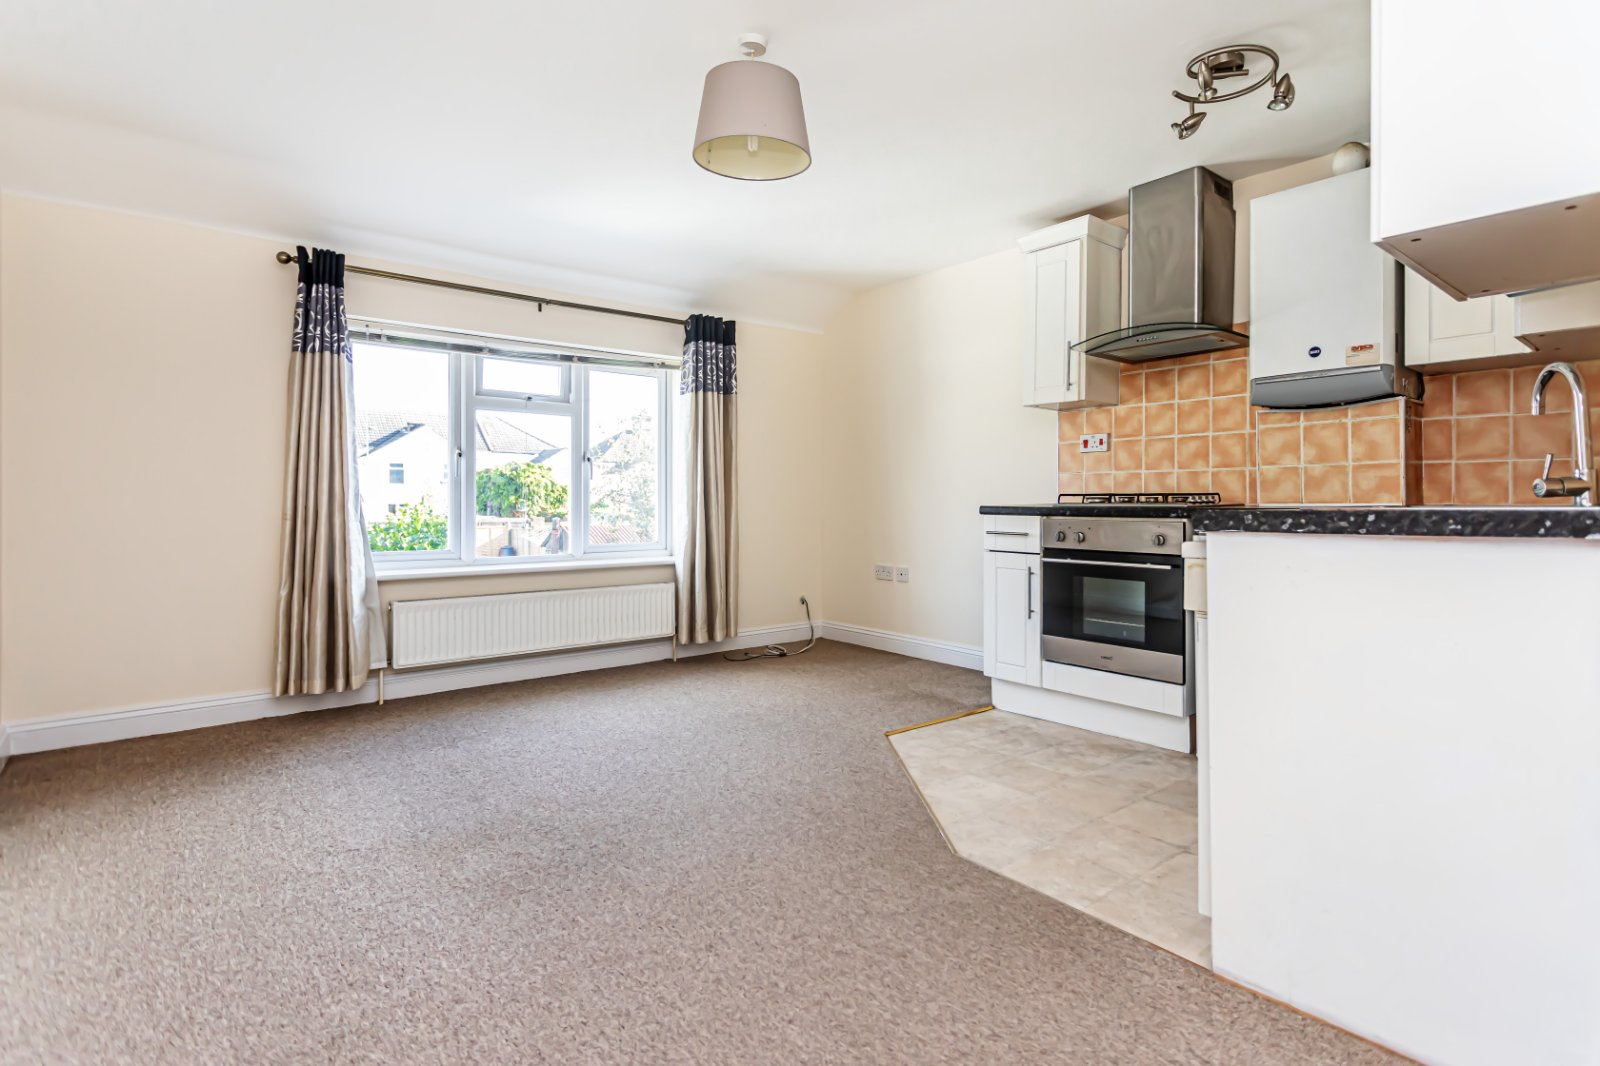 1 bed apartment to rent in Bournemouth - Property Image 1